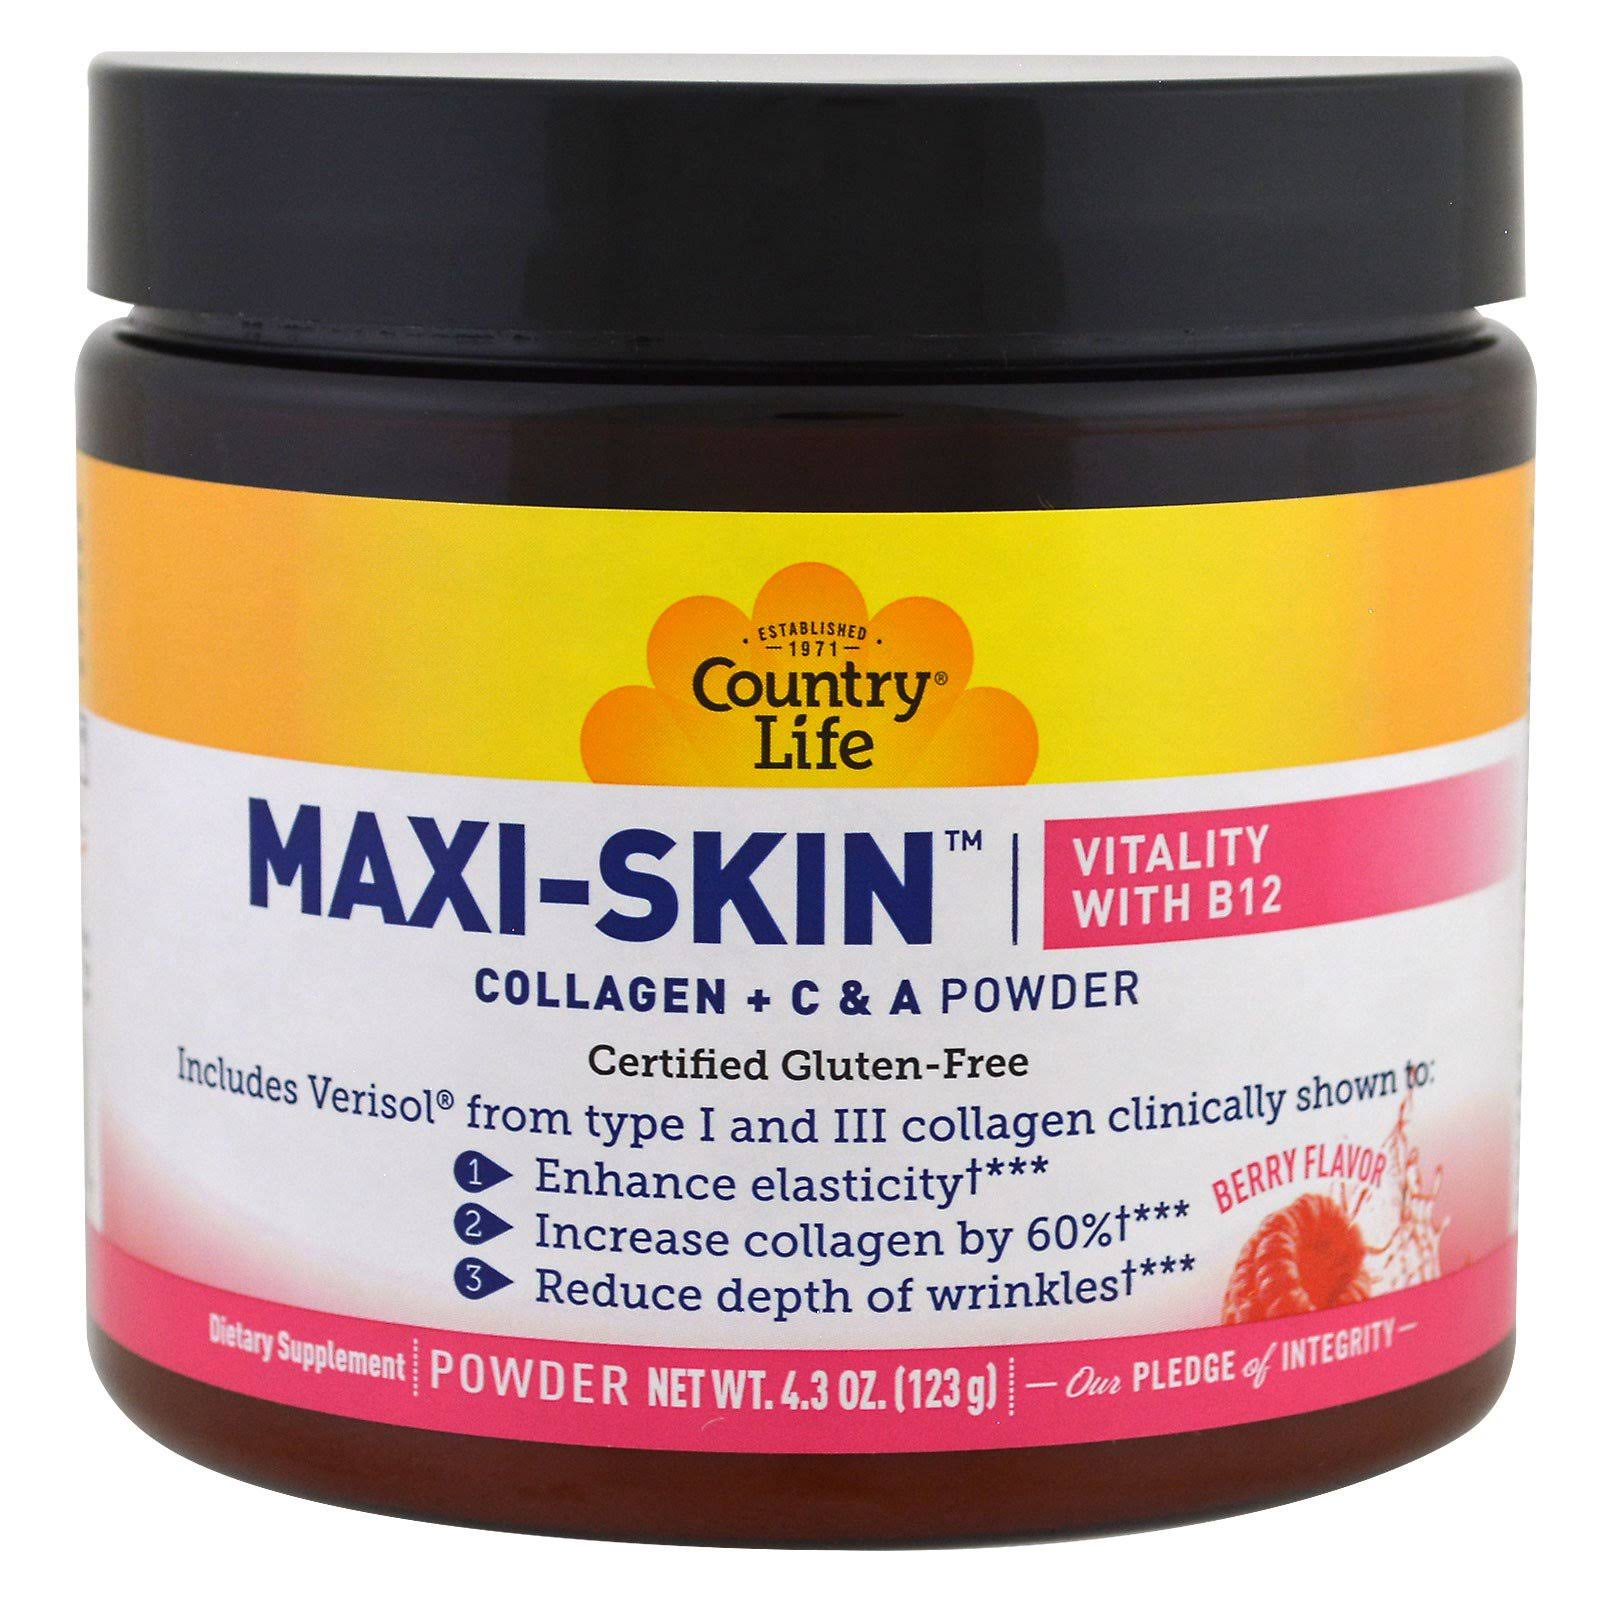 Country Life Maxi Skin Vitality with B12 Dietary Supplement - 4.3oz